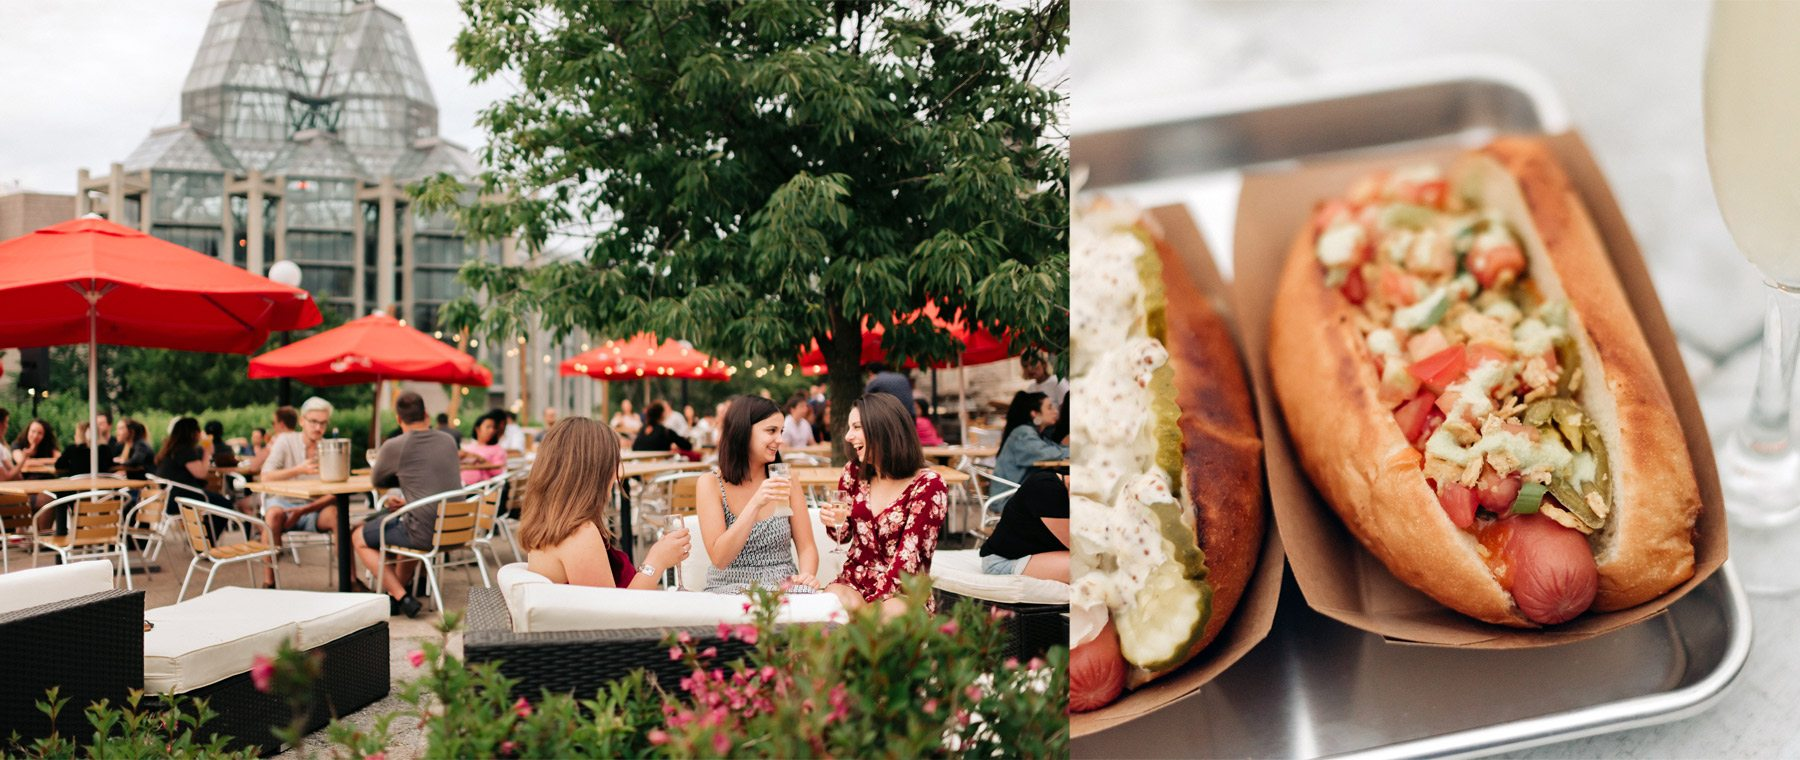 Champagne, hotdogs, and a killer view: Welcome to Tavern on the Hill